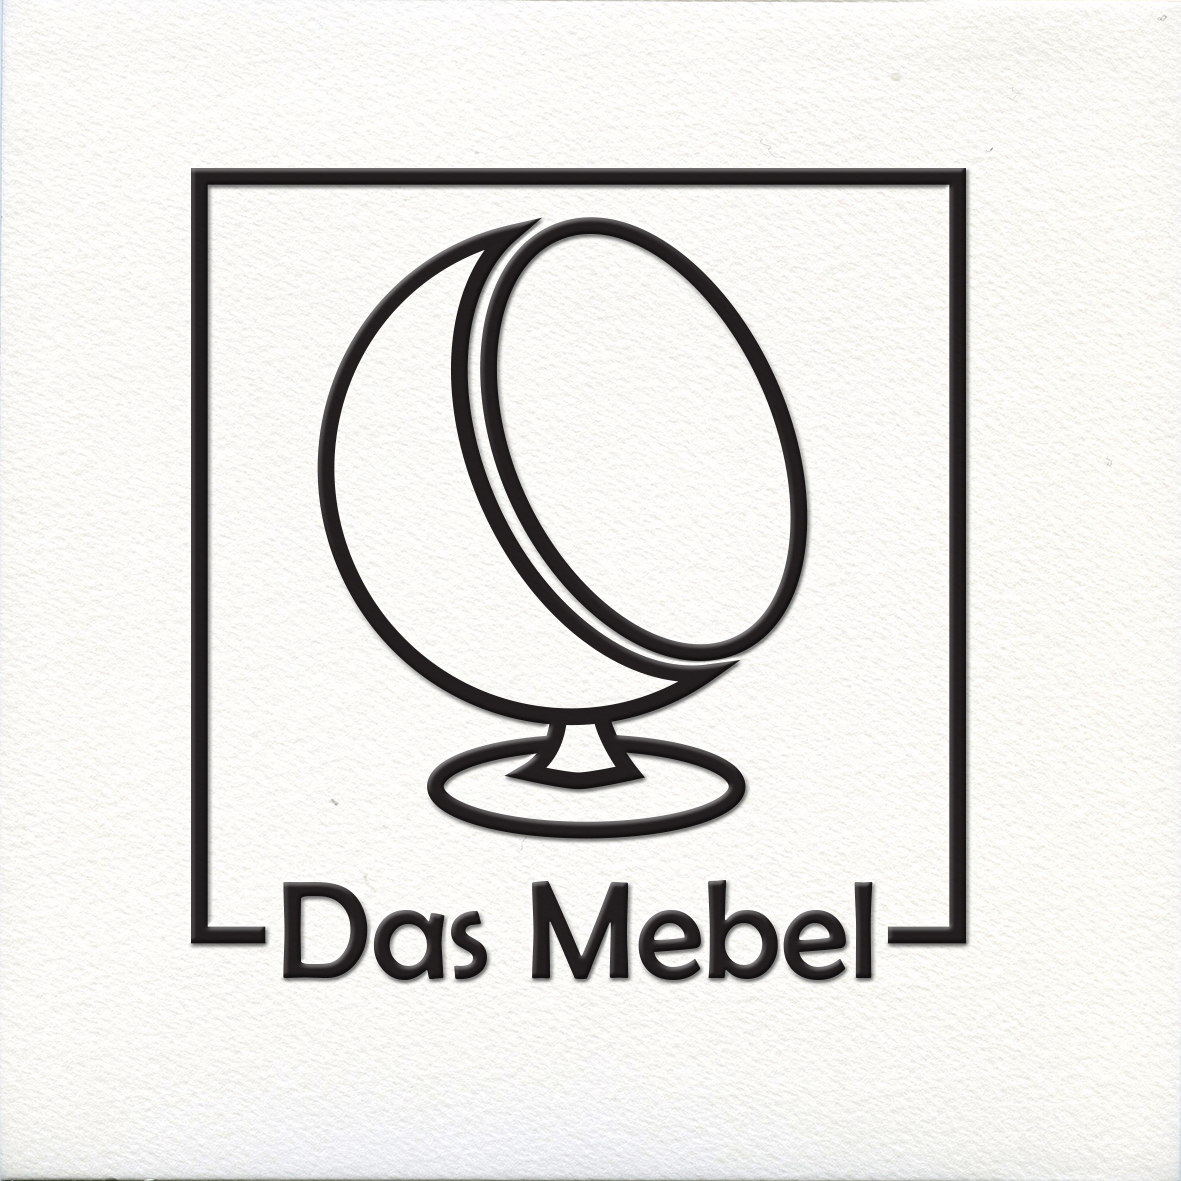 das mebel stamp